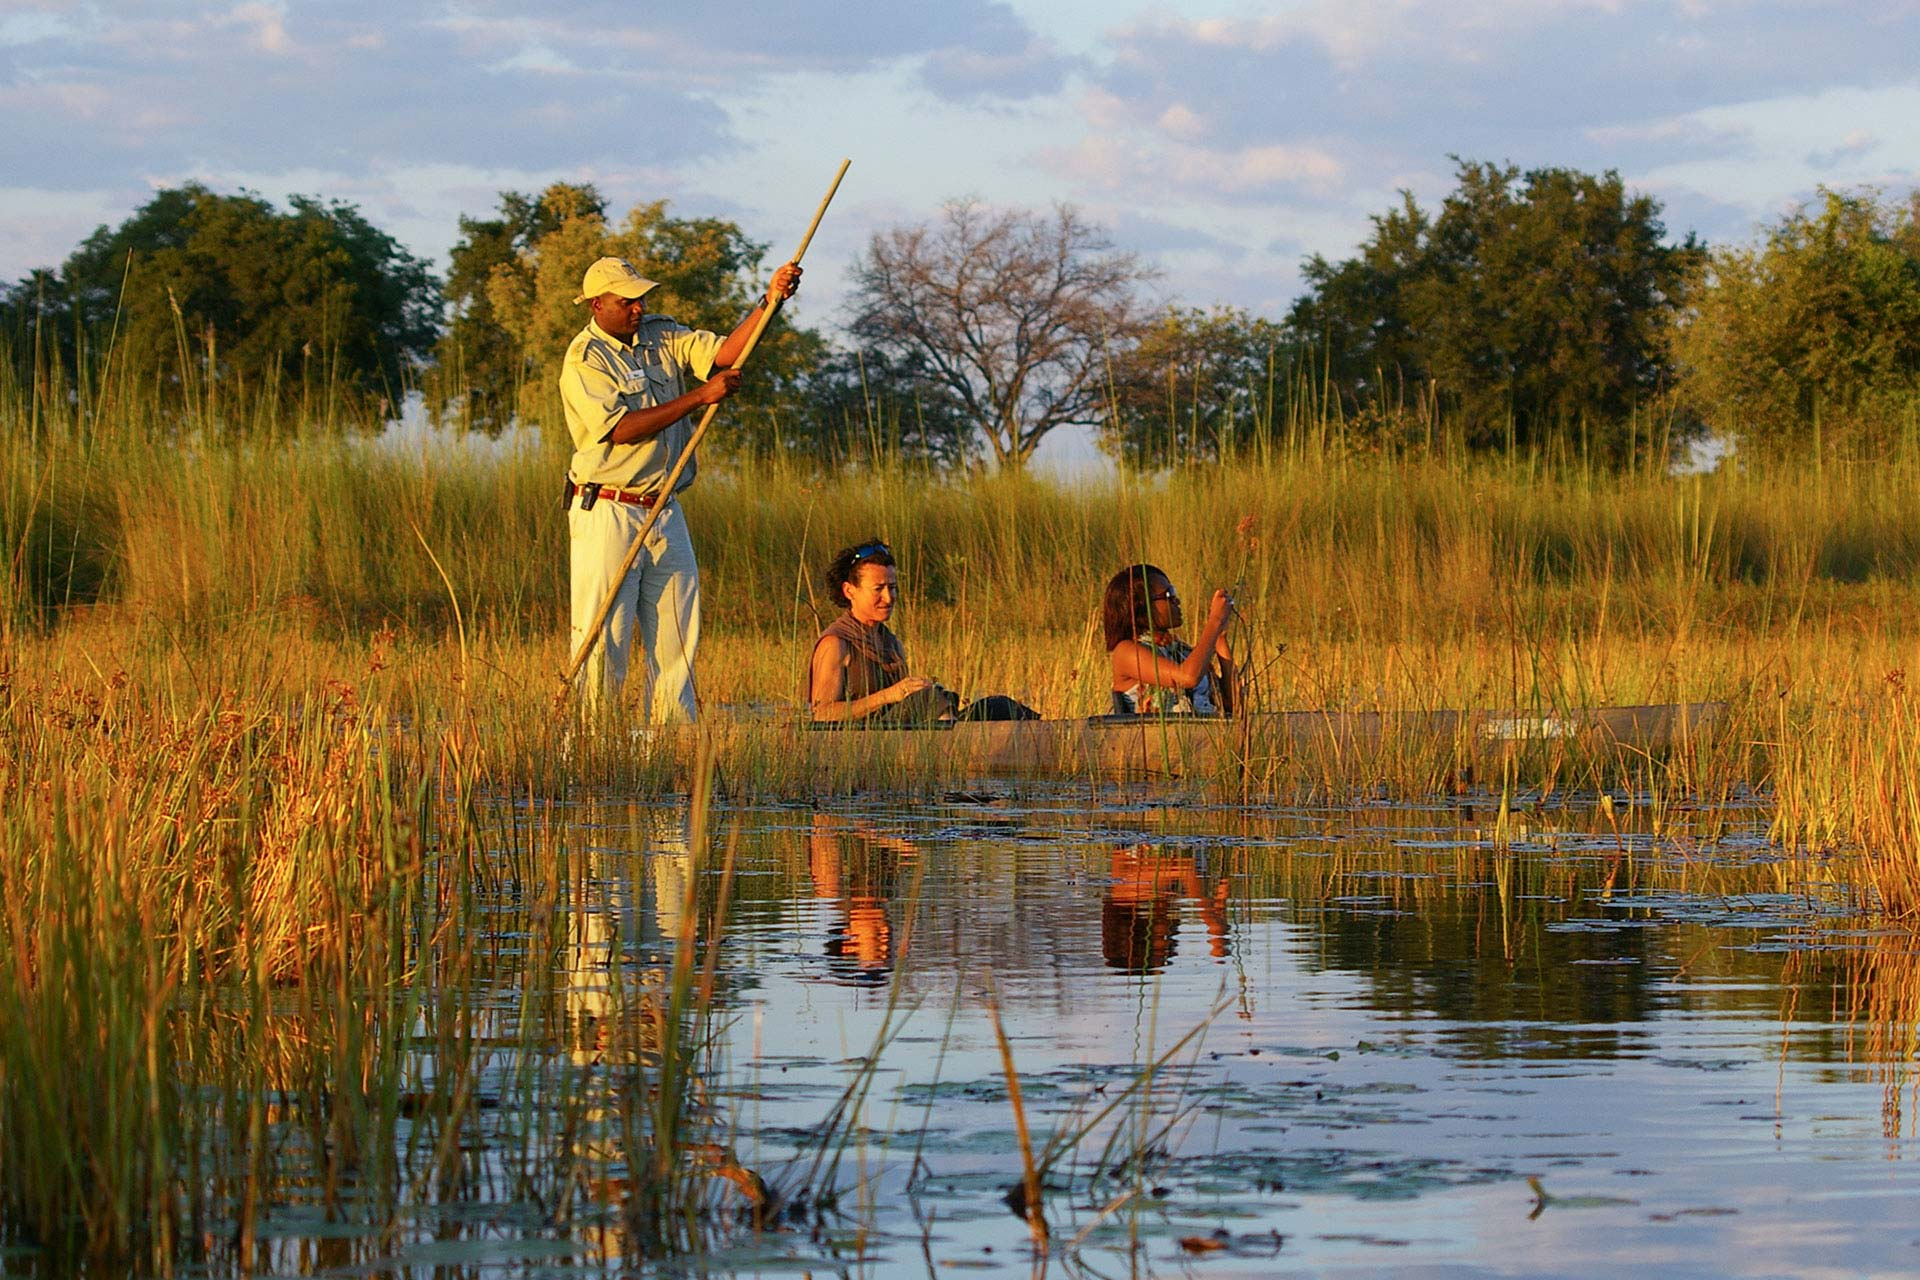 Chone and Okavango Safari Tour